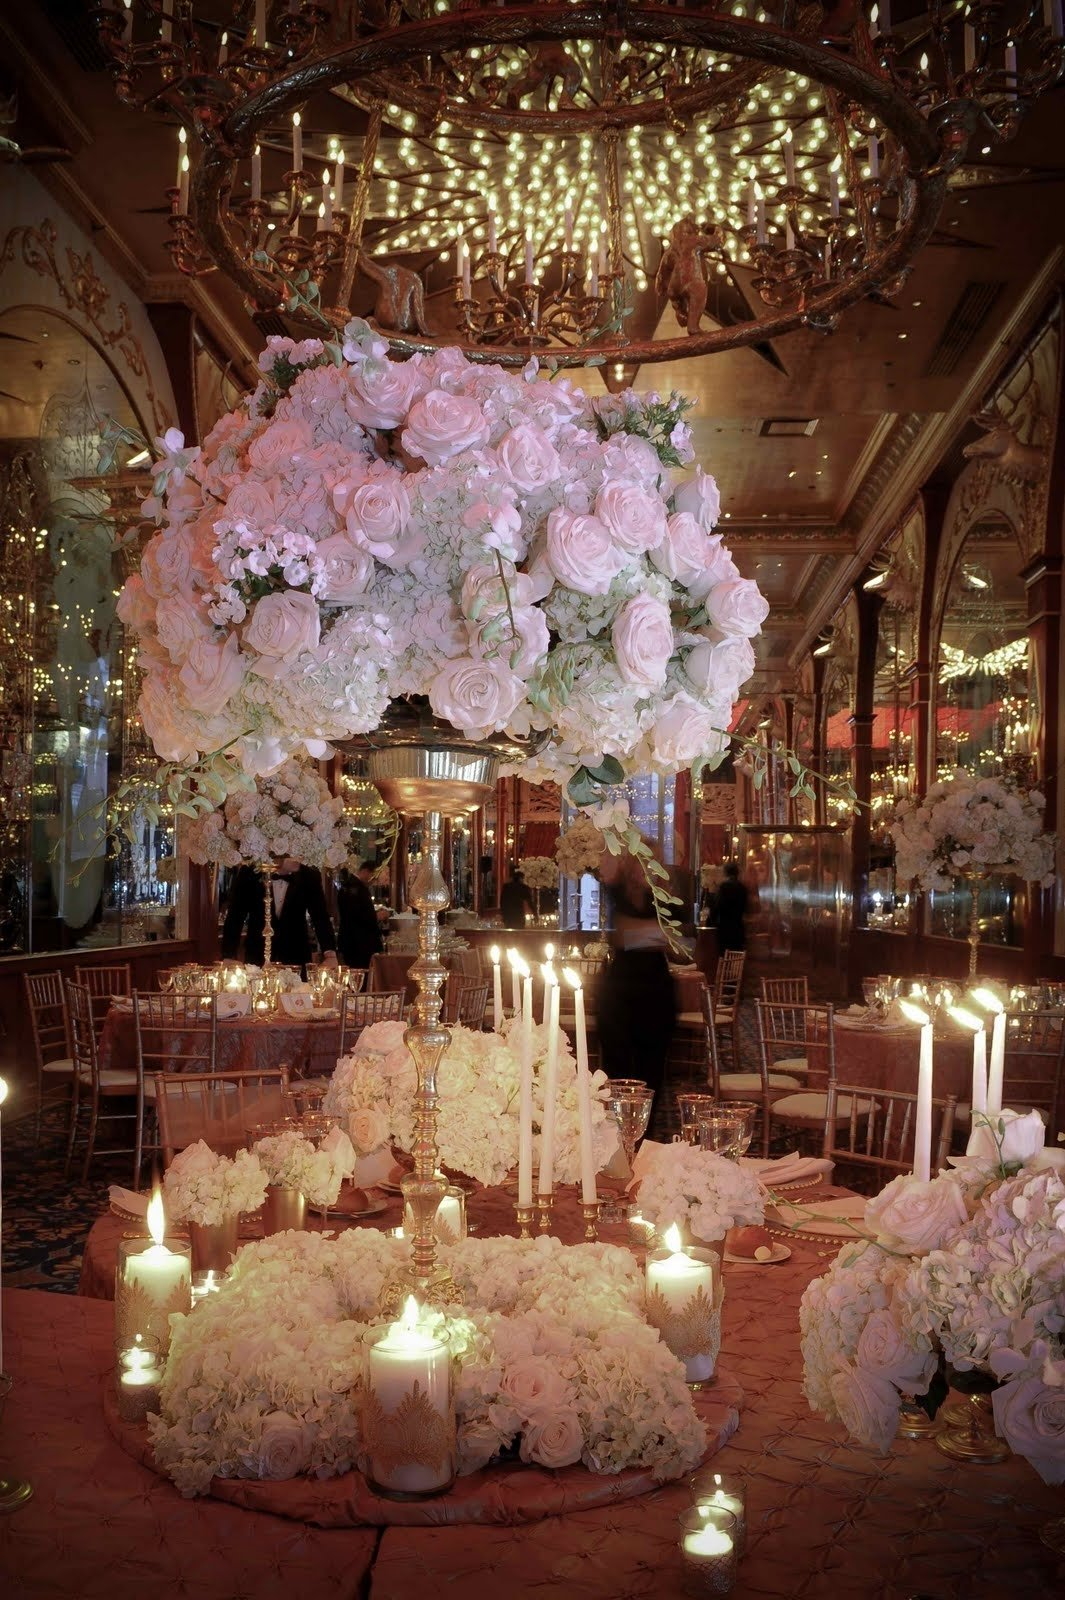 10 Fantastic Romantic New Years Eve Ideas decorating beautiful reception room with amazing new years eve 2020